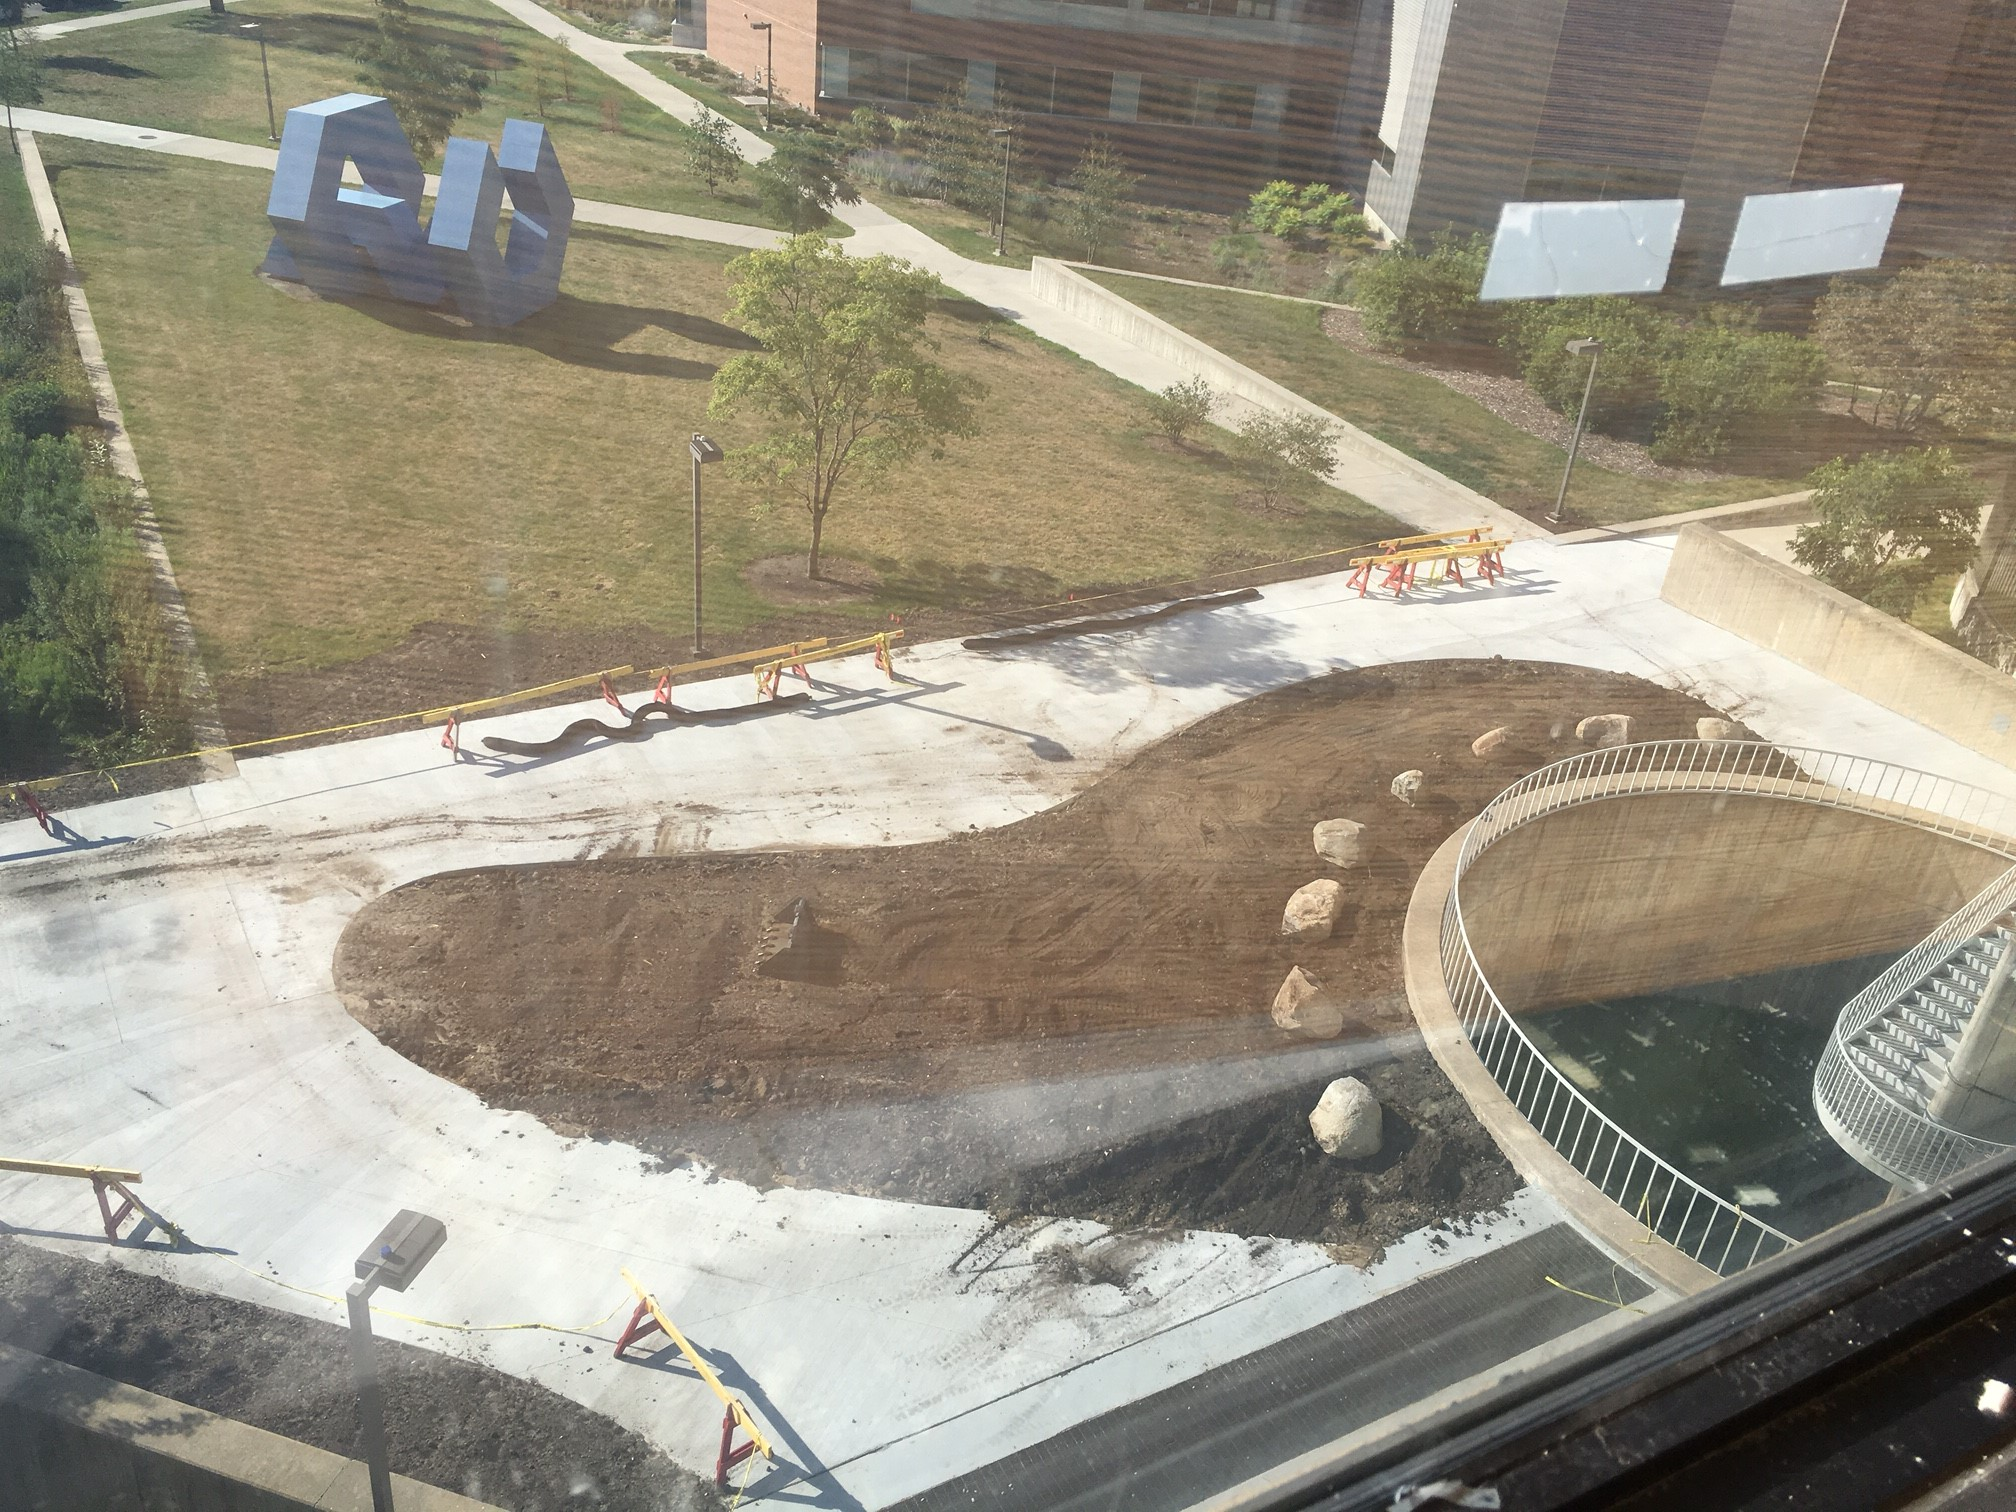 A view from above shows the new earthen mound and significantly reduced amount of pavement at the front entrance to the College of Design.